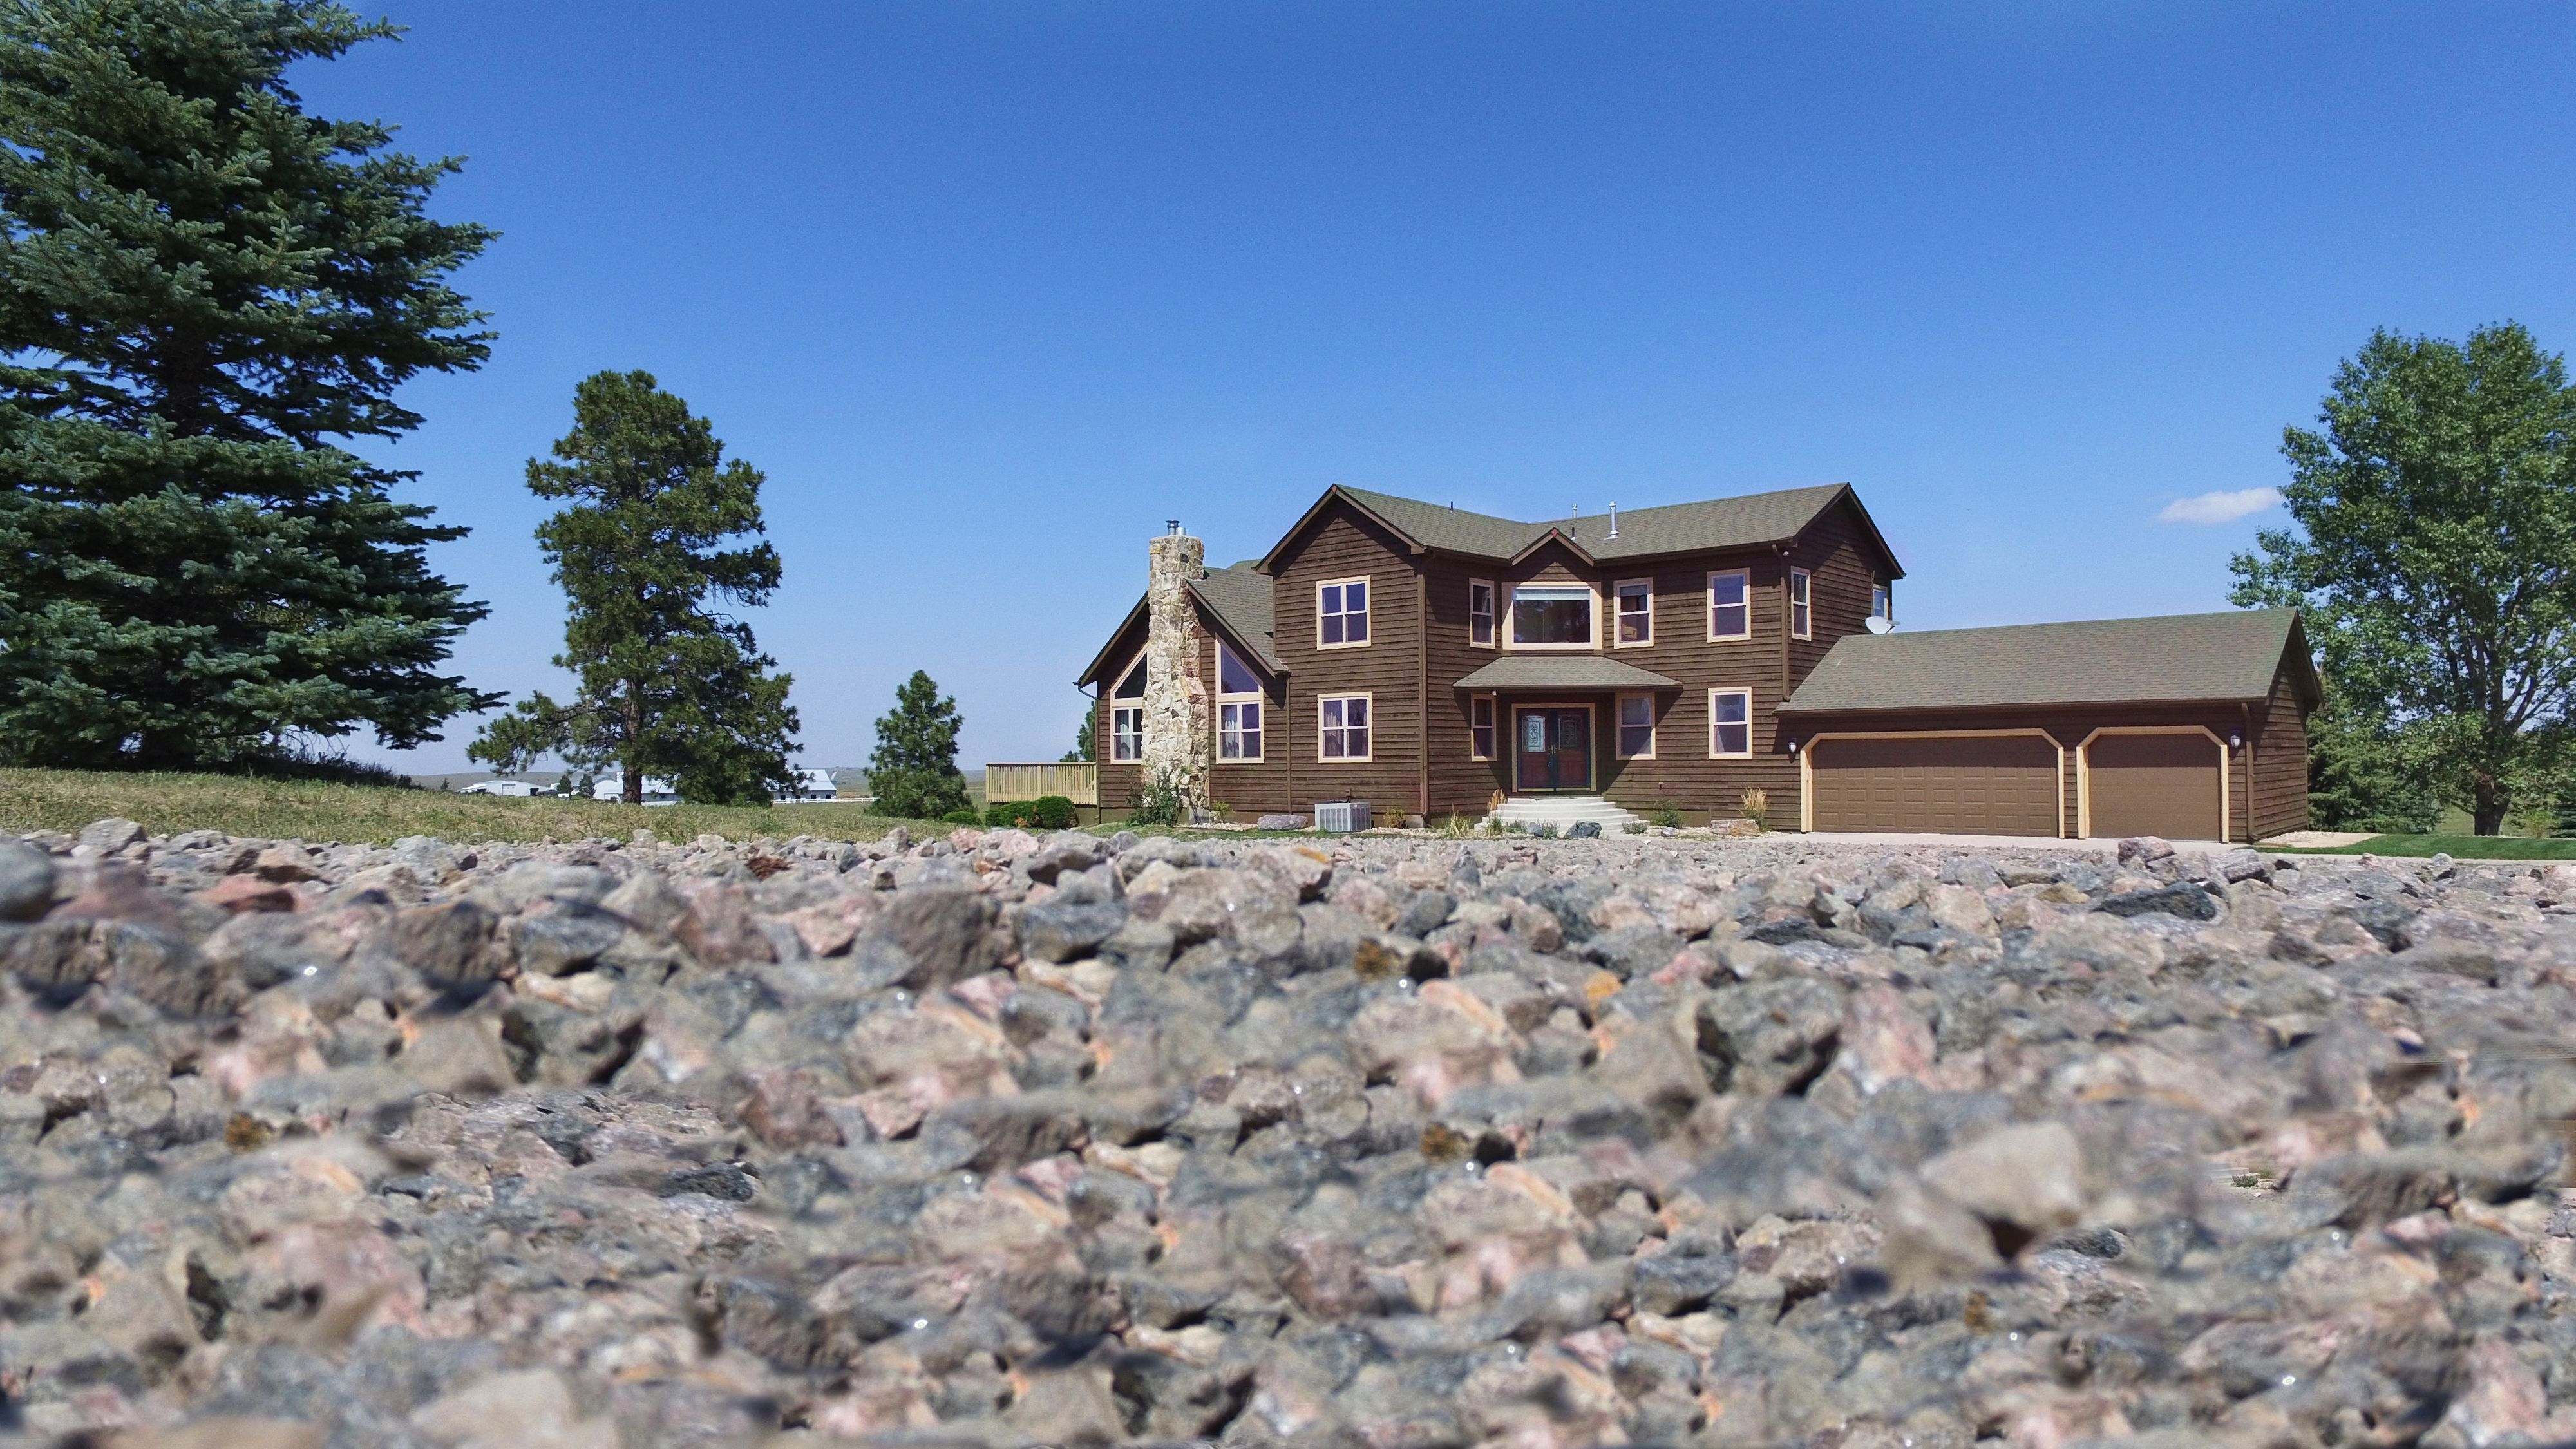 Beautiful home on 40 acres beautiful homes house styles